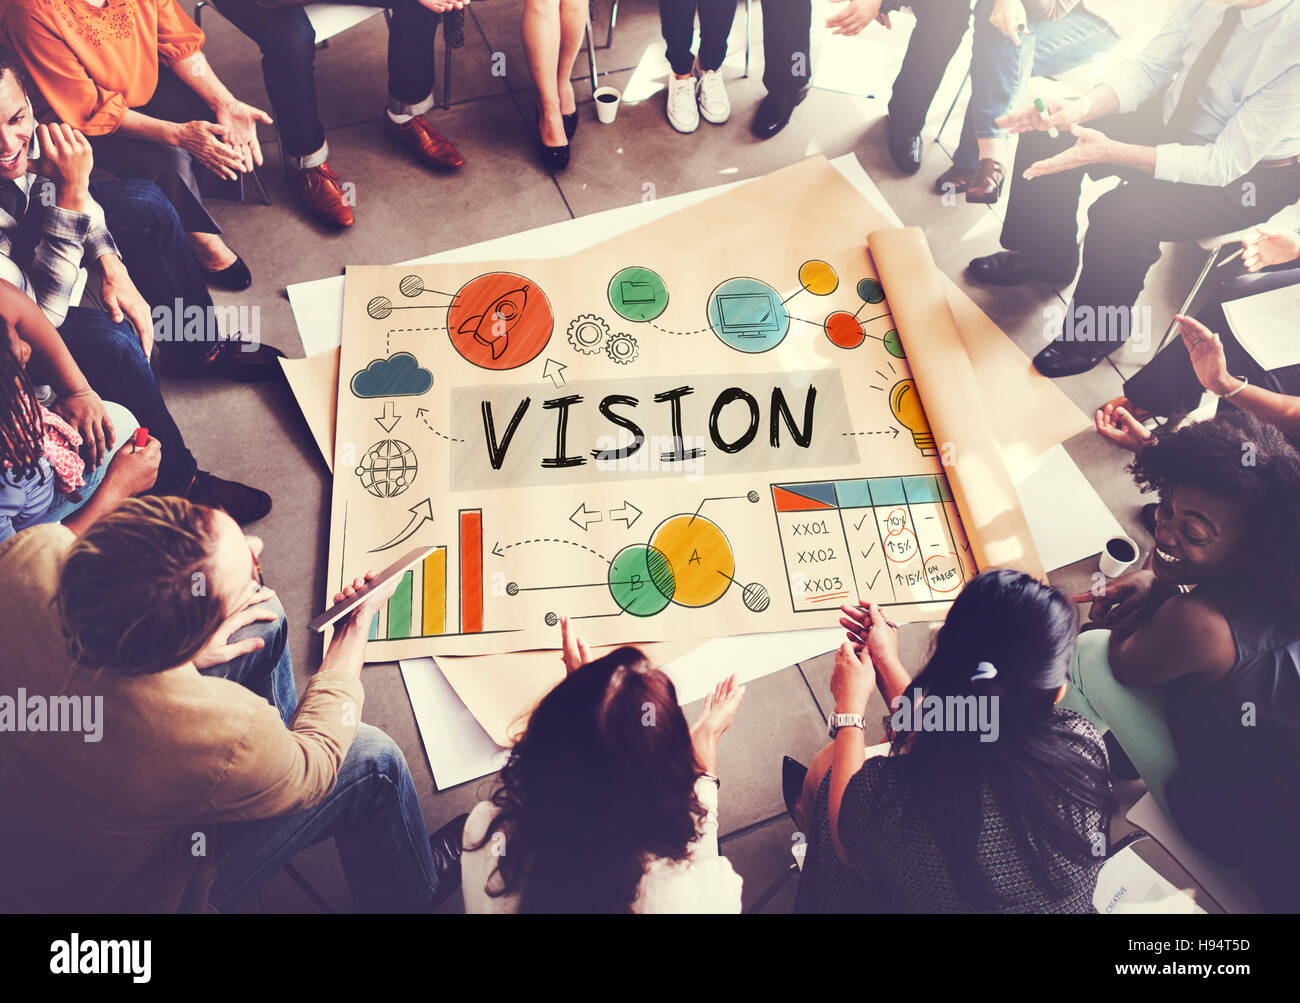 Vision Business Growth Corporate Target Concept - Stock Image